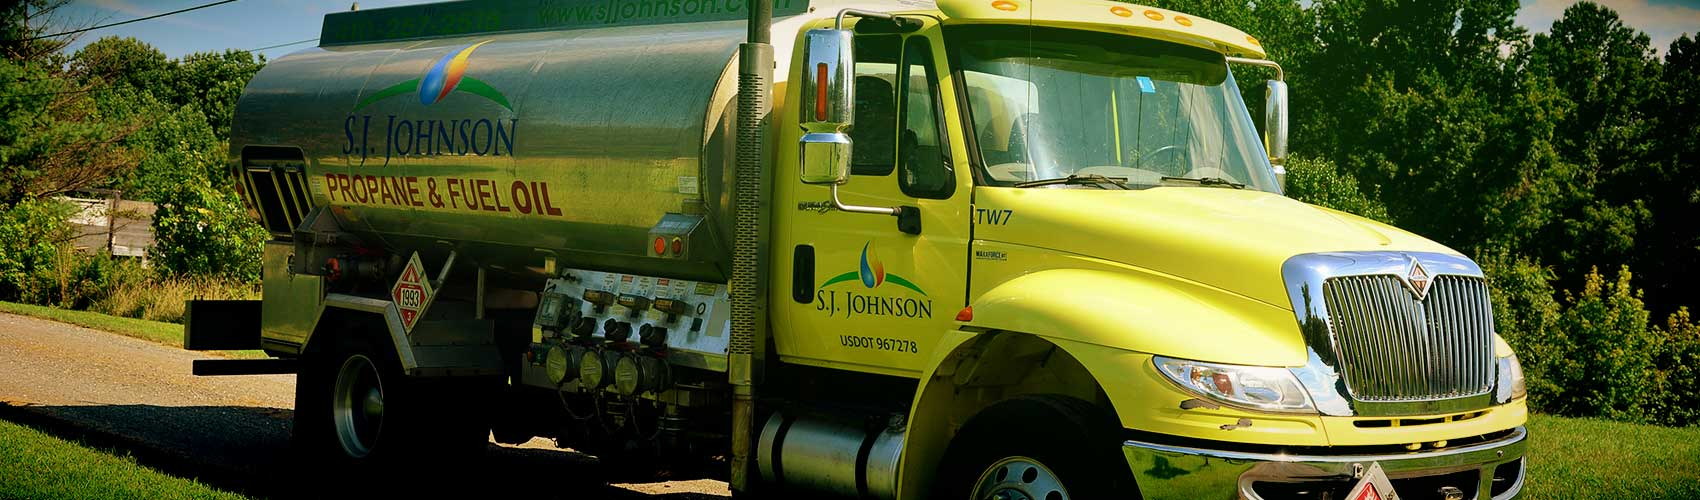 SJ Johson, Inc Fuel Oil in Beltsville